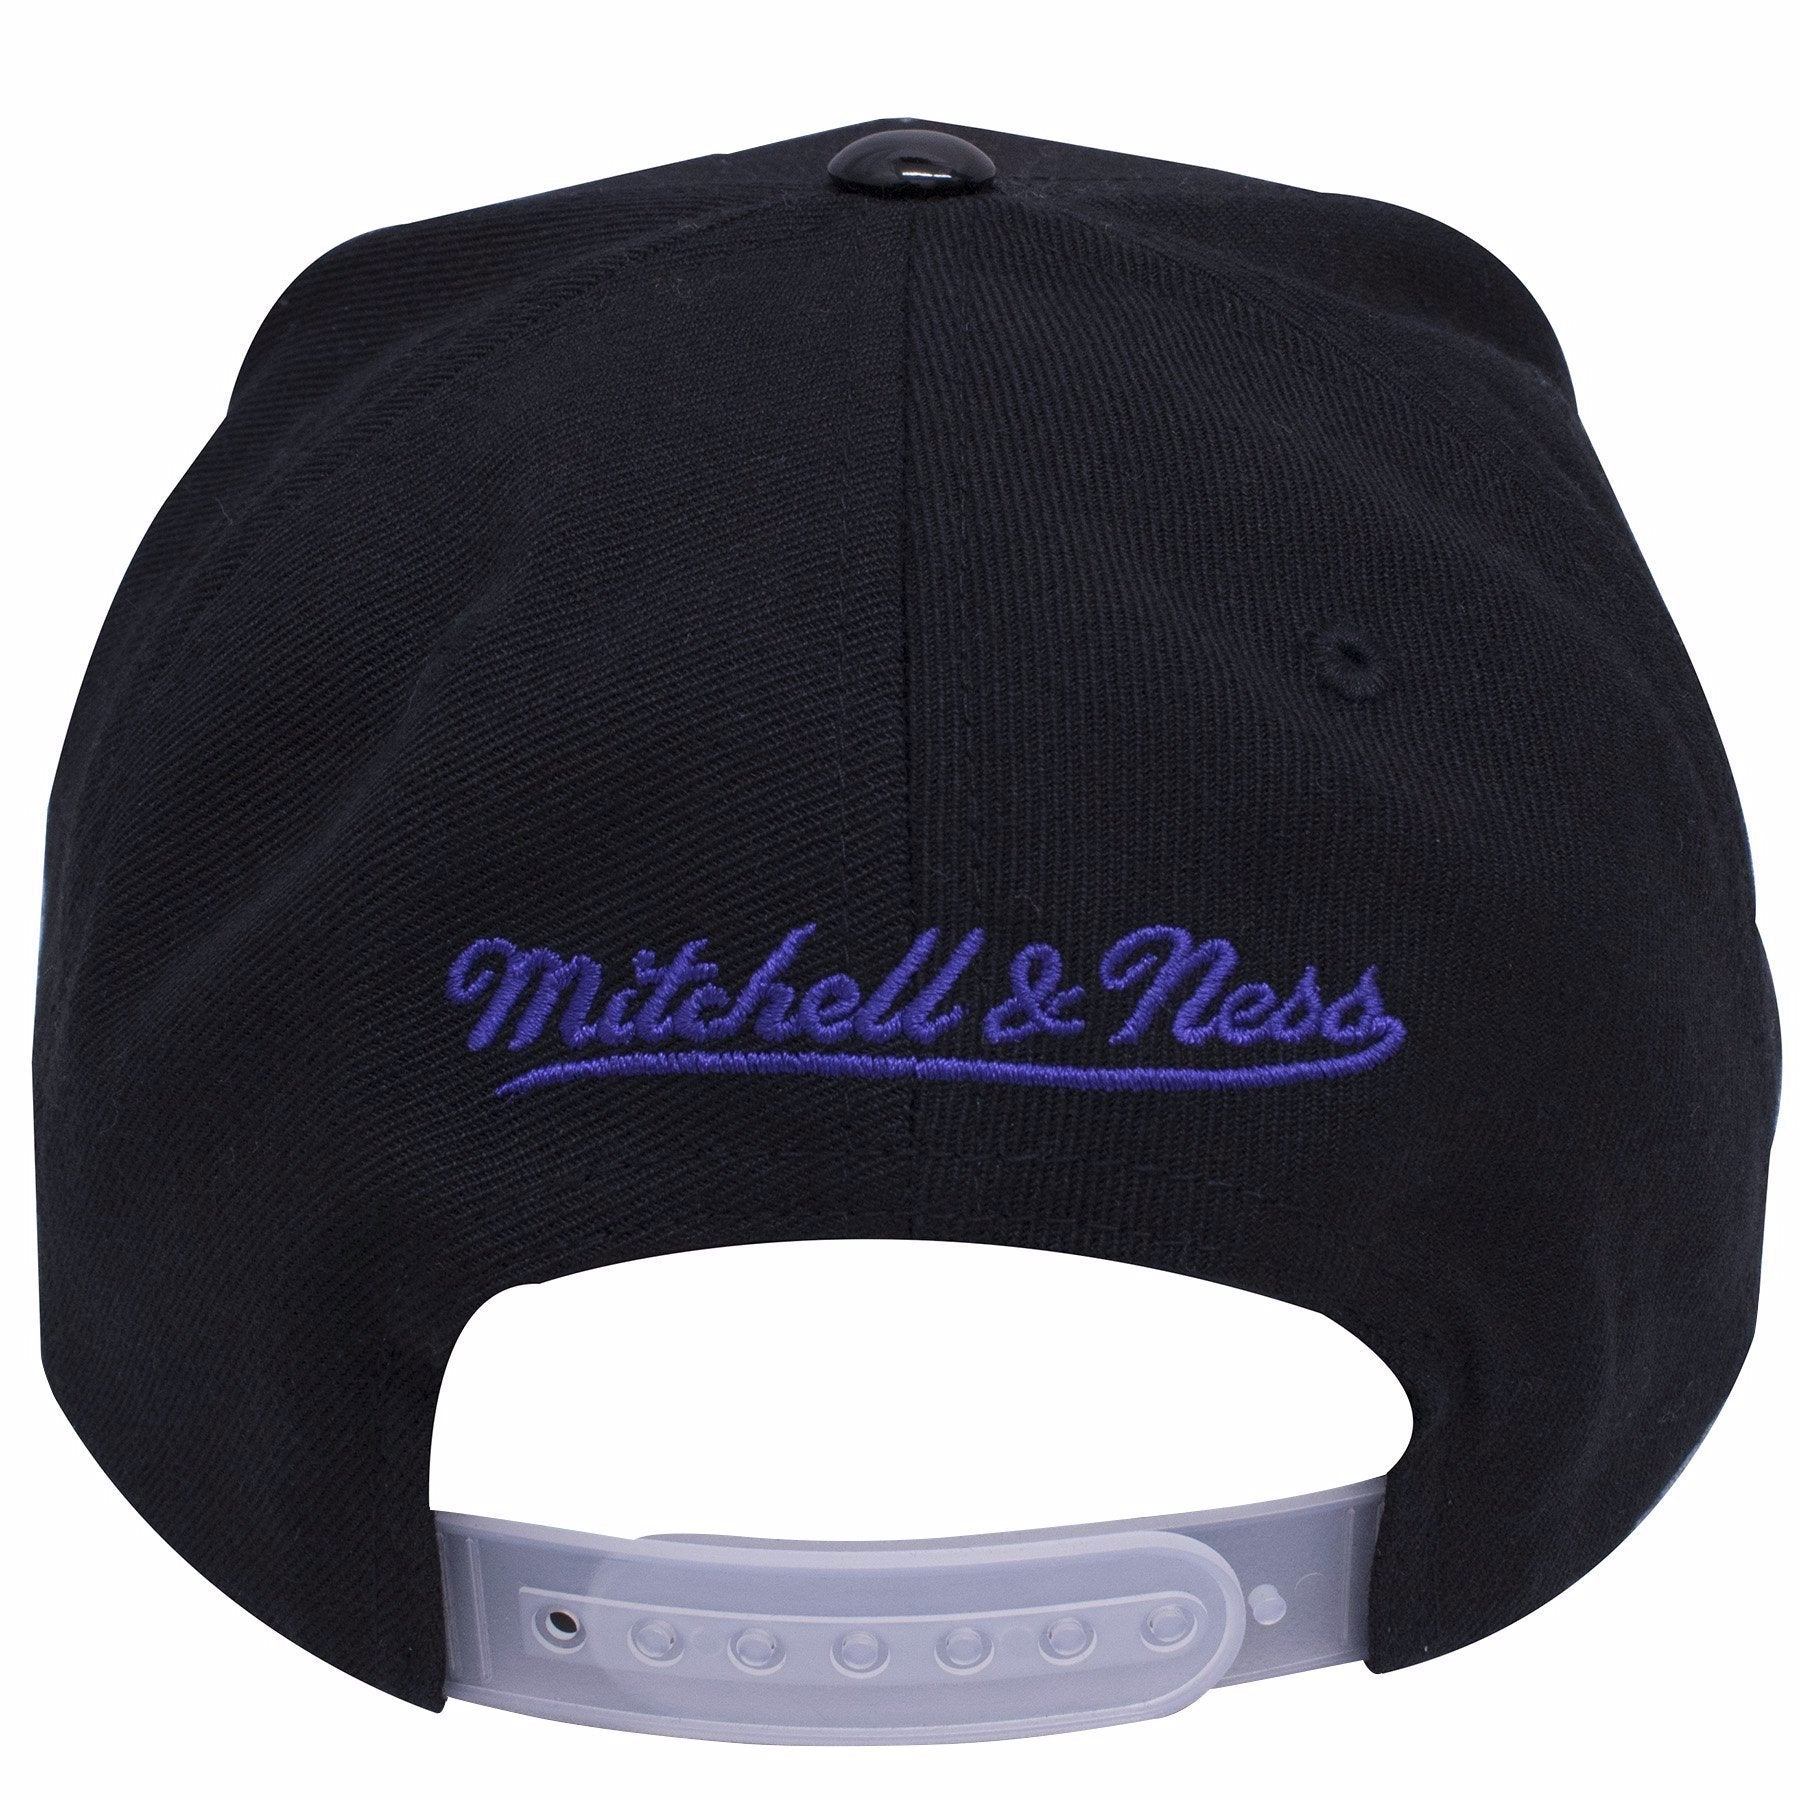 9ad74359c96 ... on the back of the Chicago Bulls Air Jordan 11 Space Jam sneaker  matching snapback hat ...